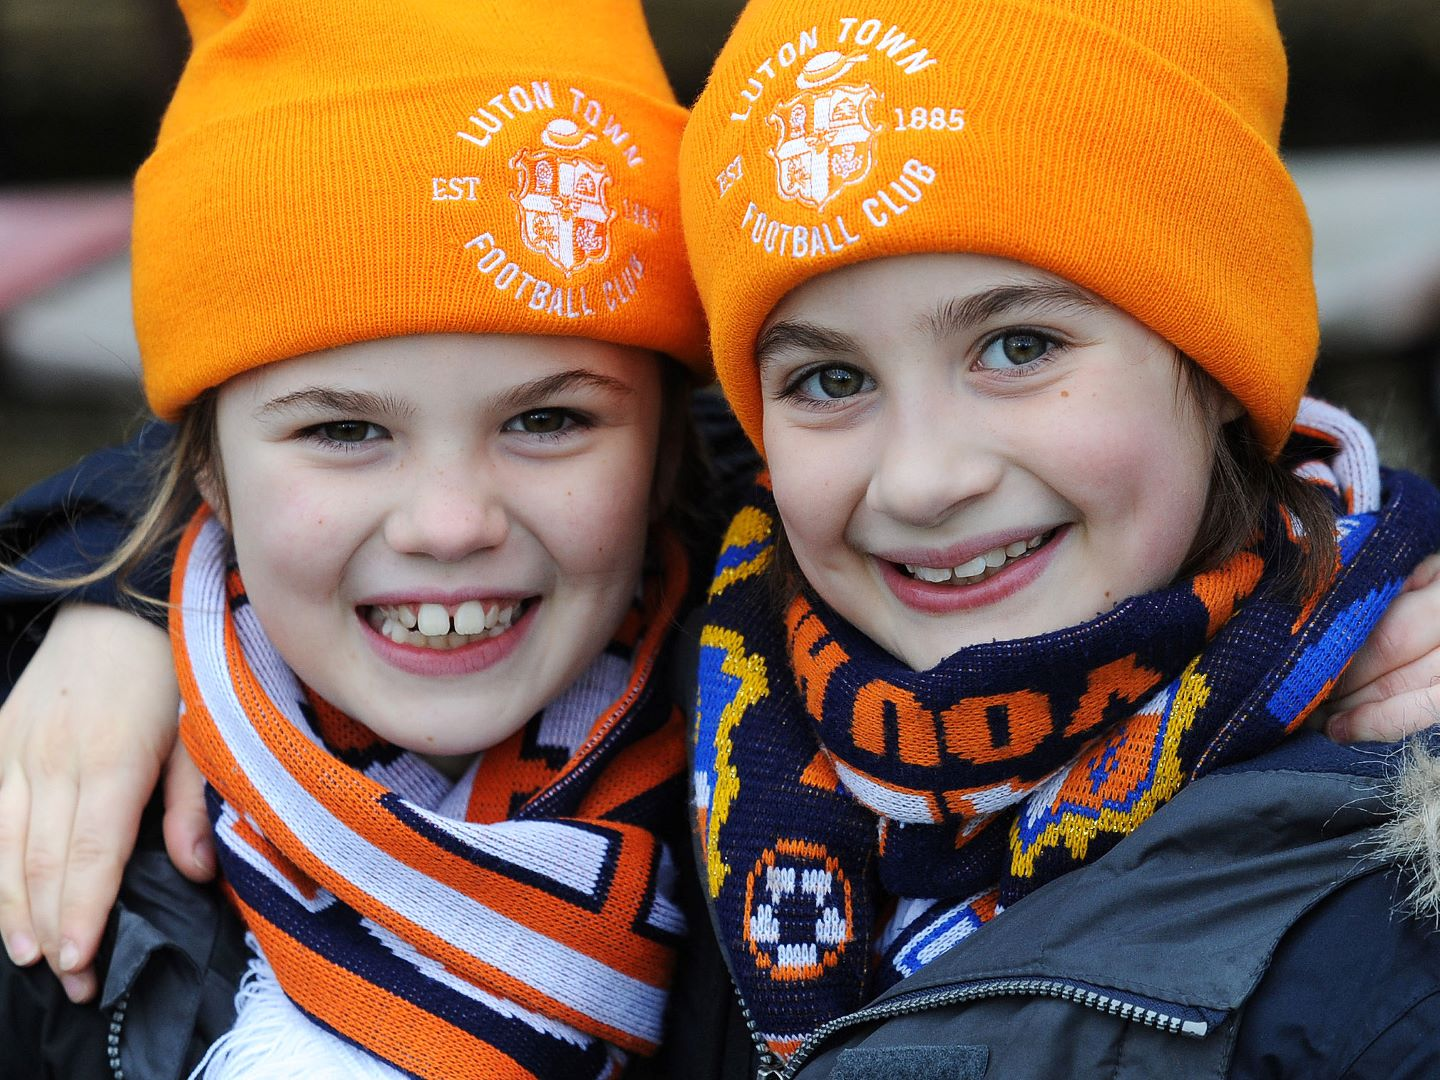 Junior Hatters in their official Hatters wear